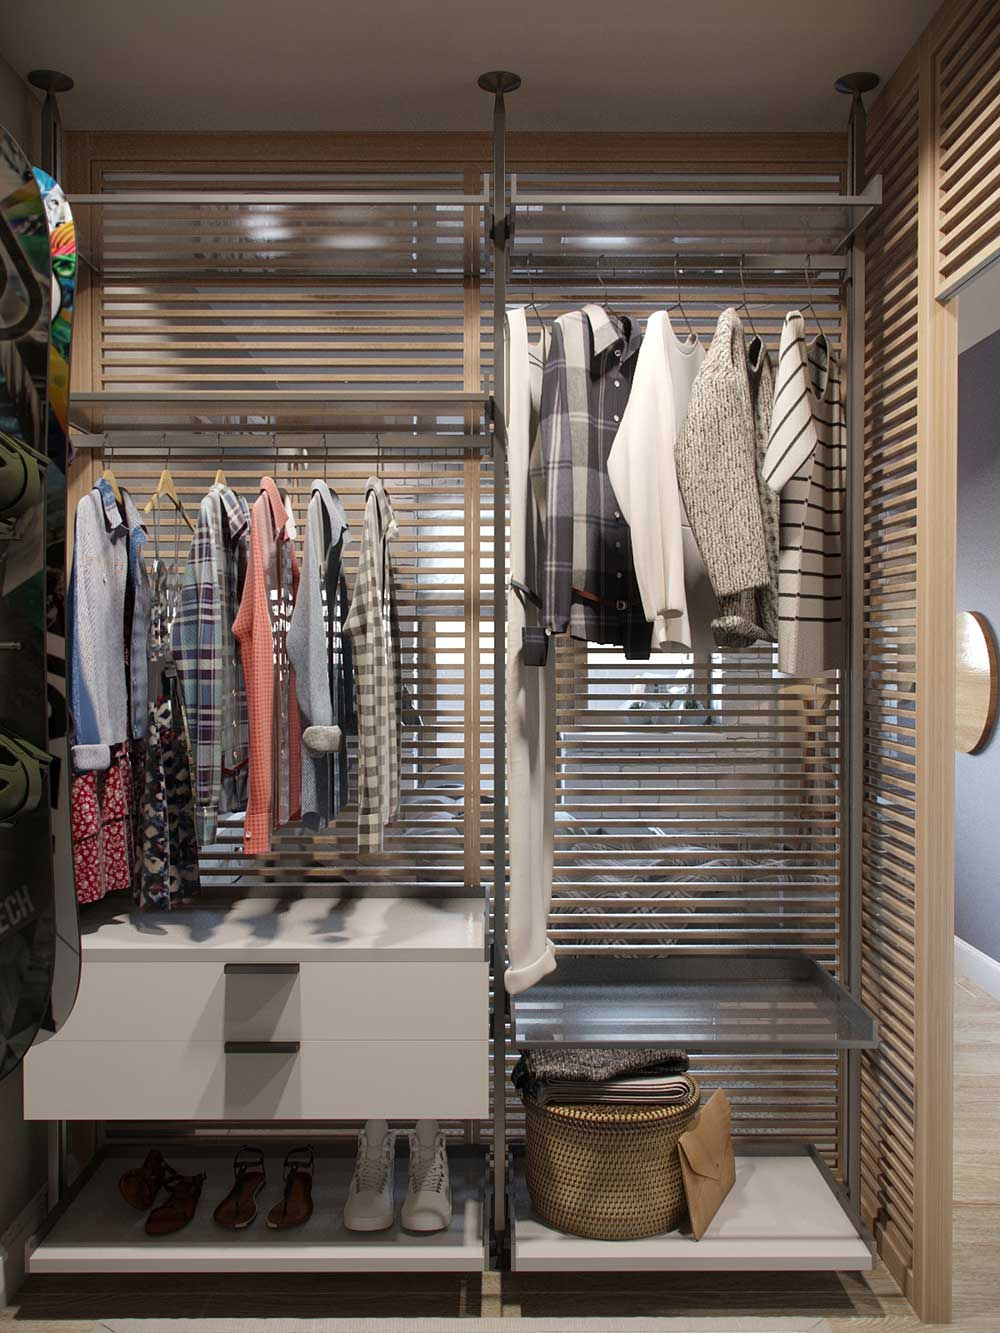 tiny apartment wardrobe design jl - Amur Tiny Apartment Design